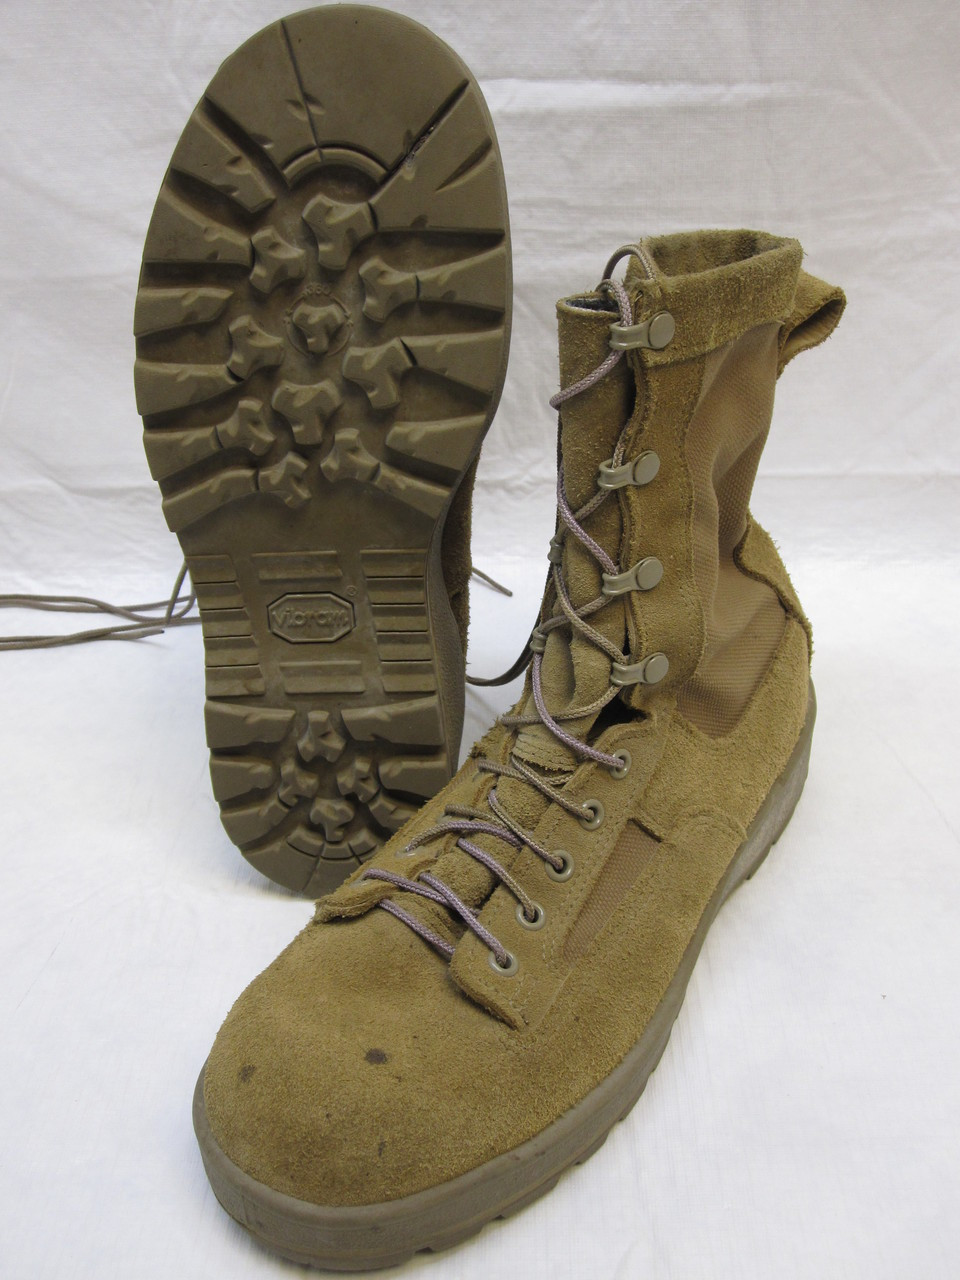 sports shoes 100% authentic buy ALTAMA ARMY OCP GORE-TEX COLD WEATHER COMBAT BOOTS 8.5 W ATERPROOF